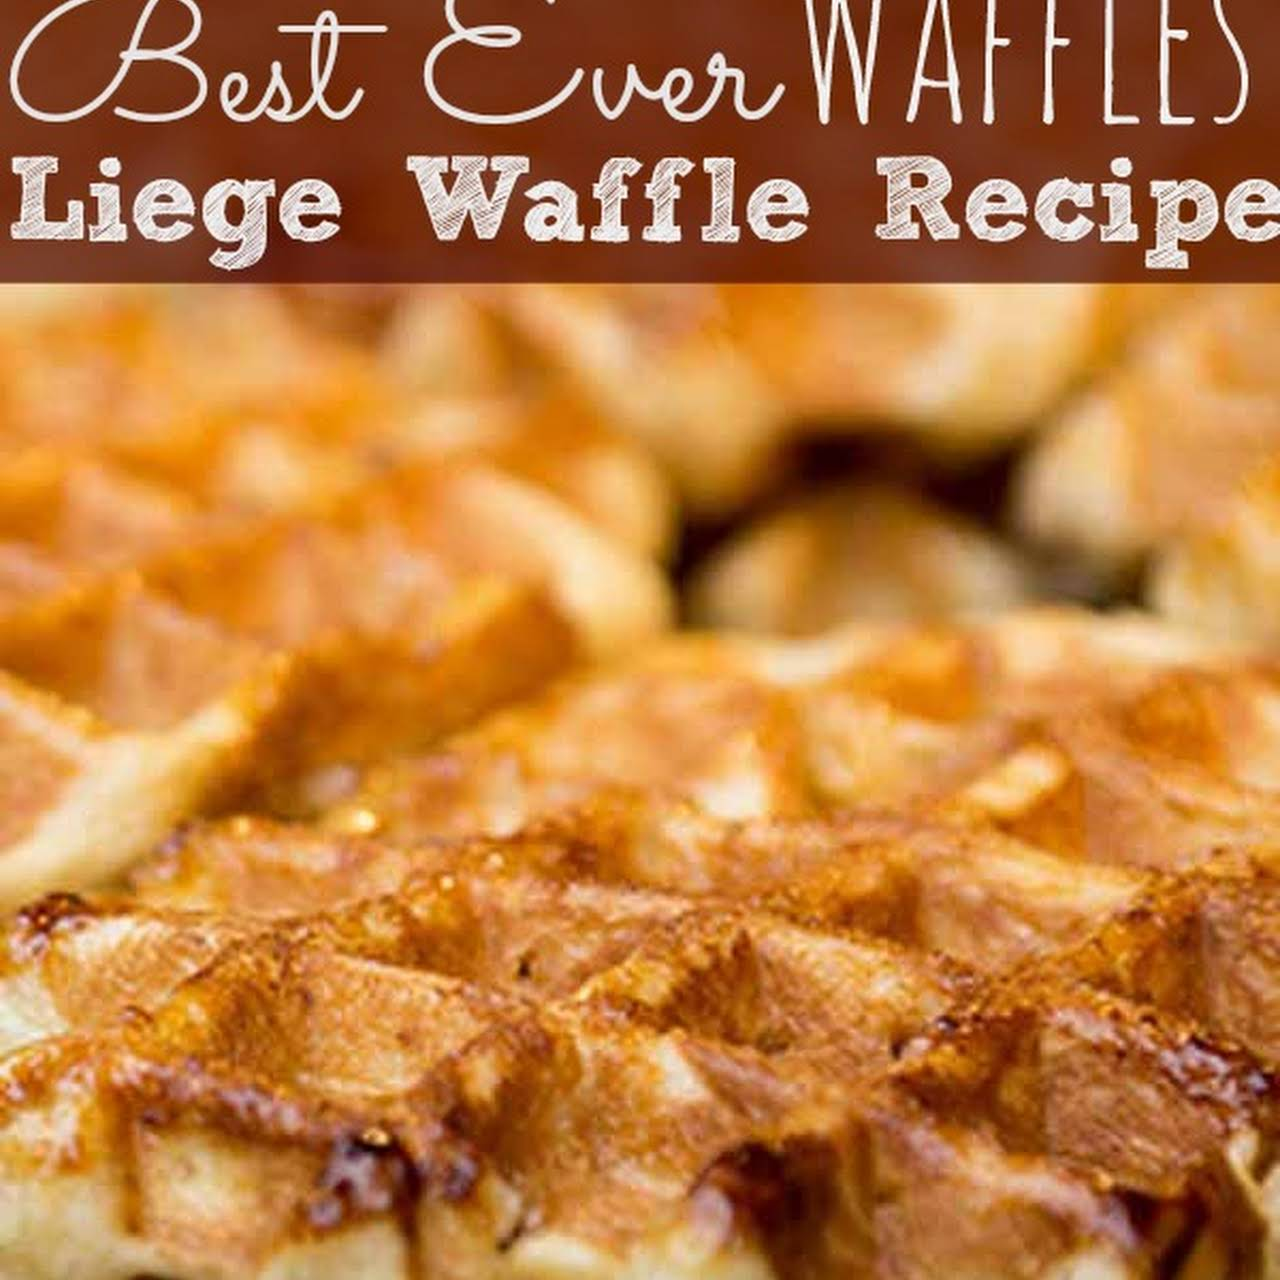 Best Waffle Recipe of All Time